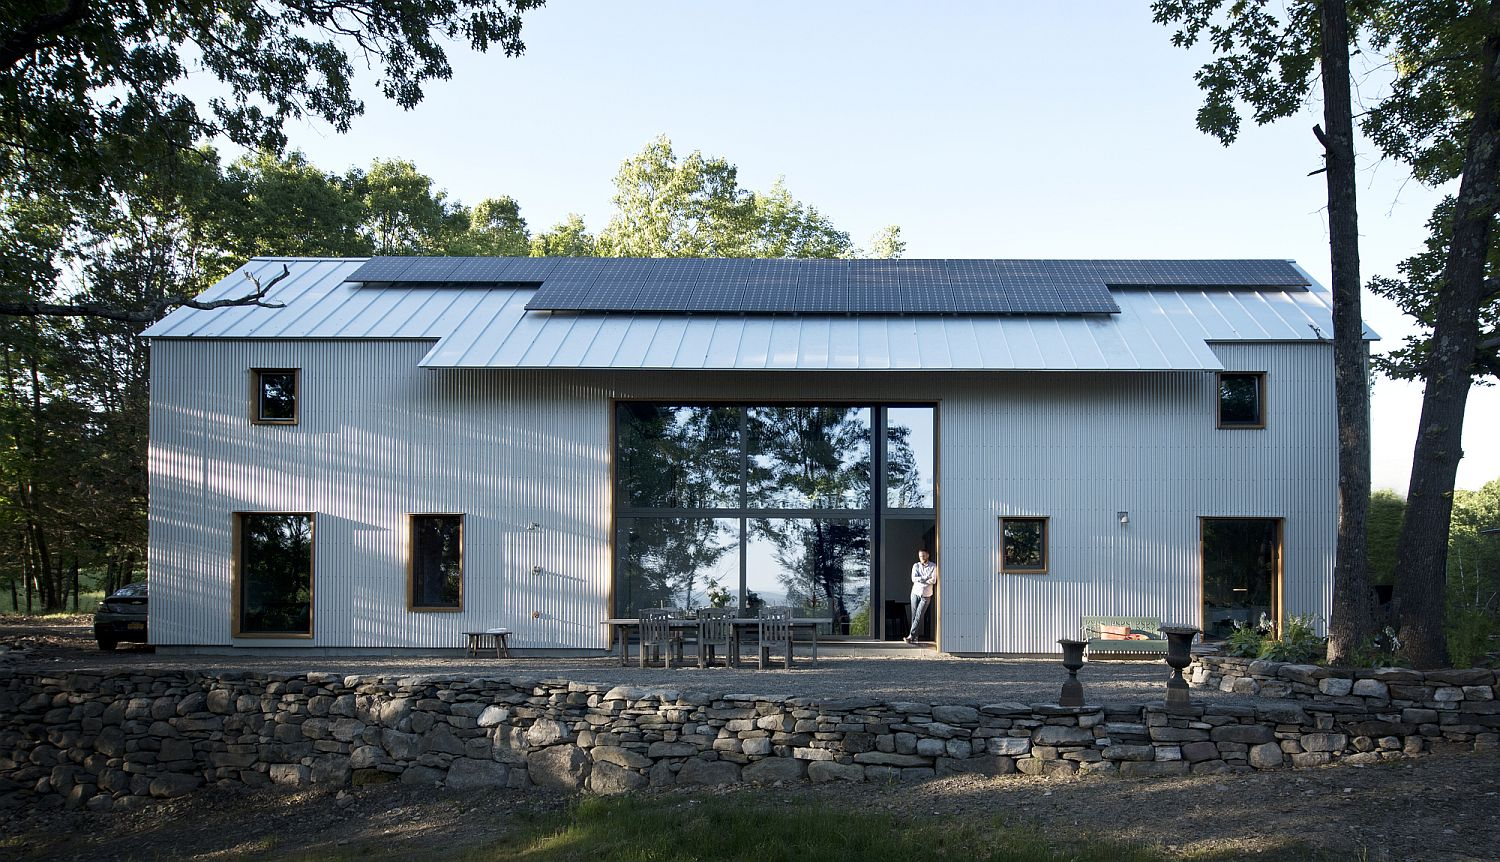 Passive House in new York borrows from vernacular design of Dutch settler homes in the region